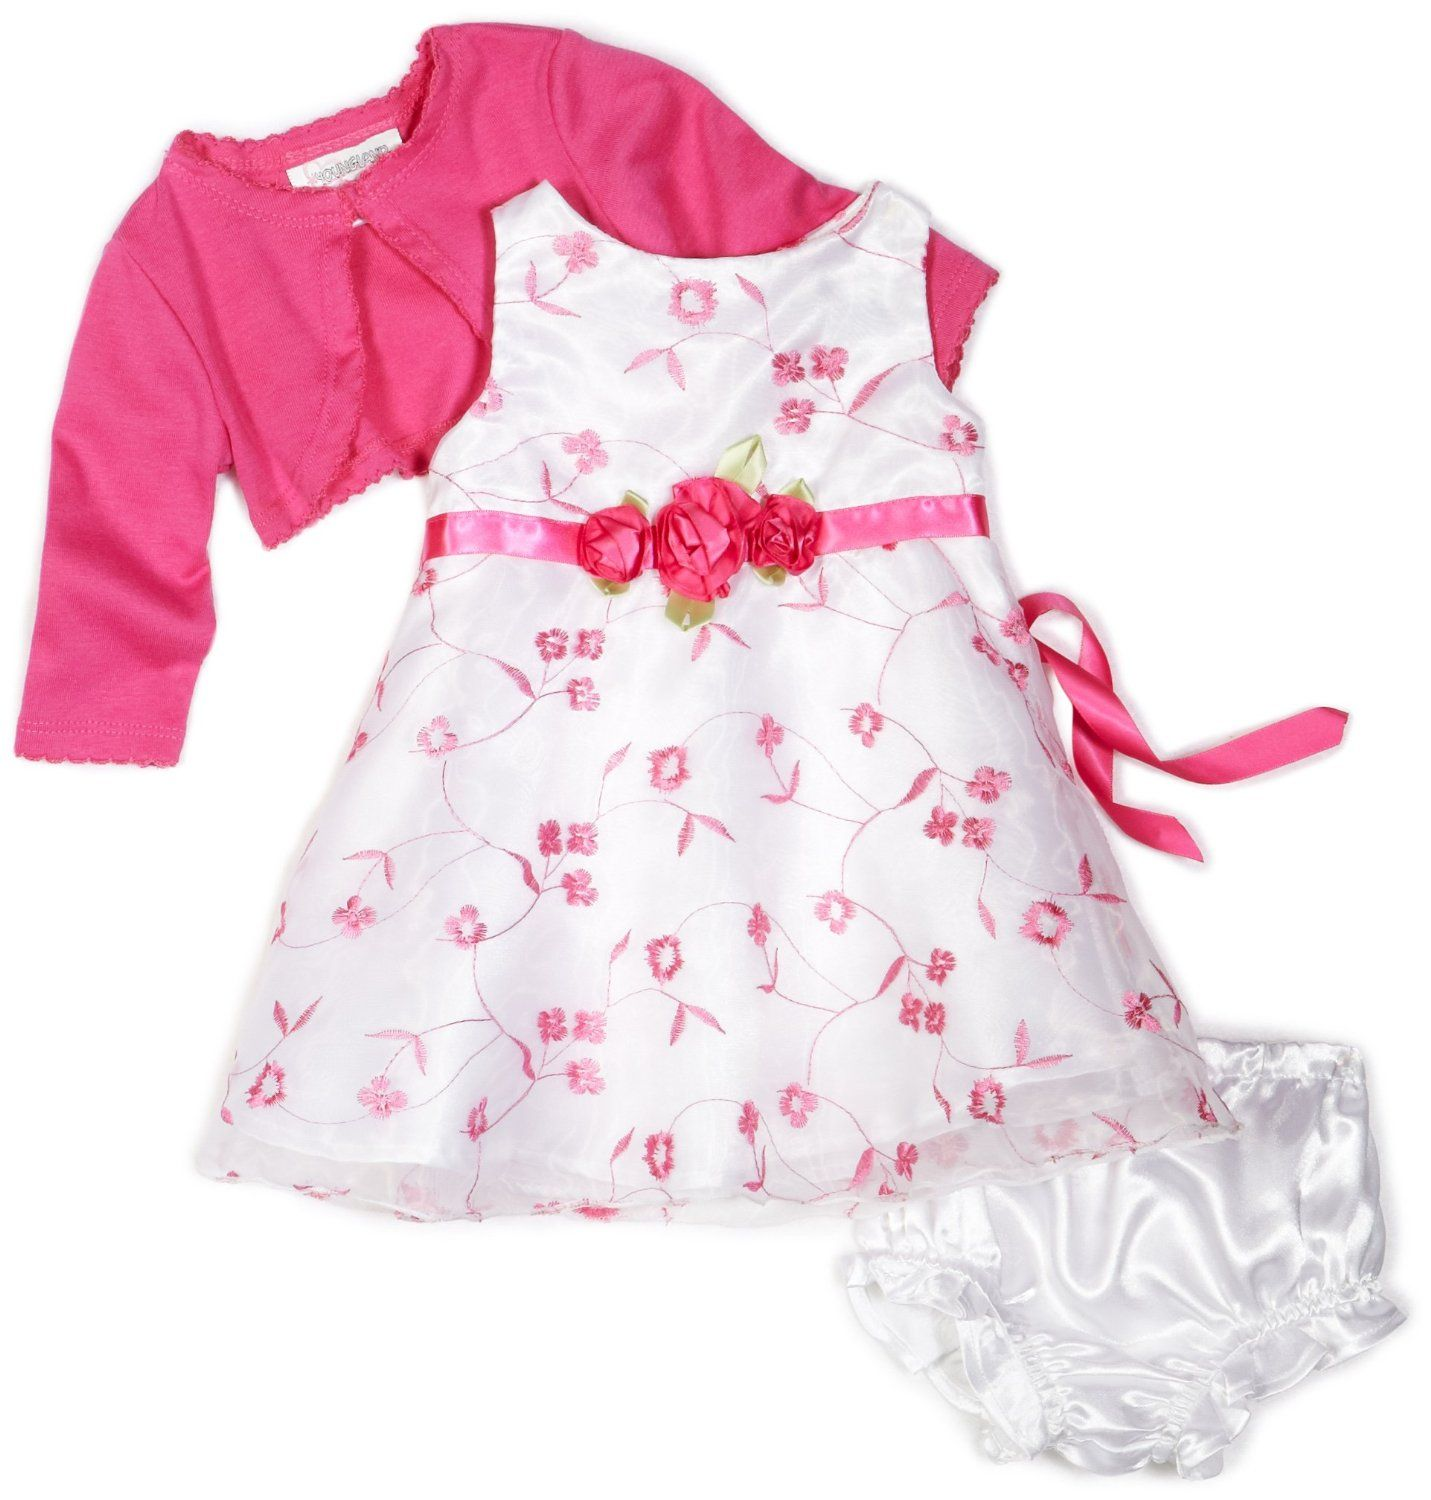 Baby Girl Clothes | Baby Girls Clothing | Find the Latest News on ...